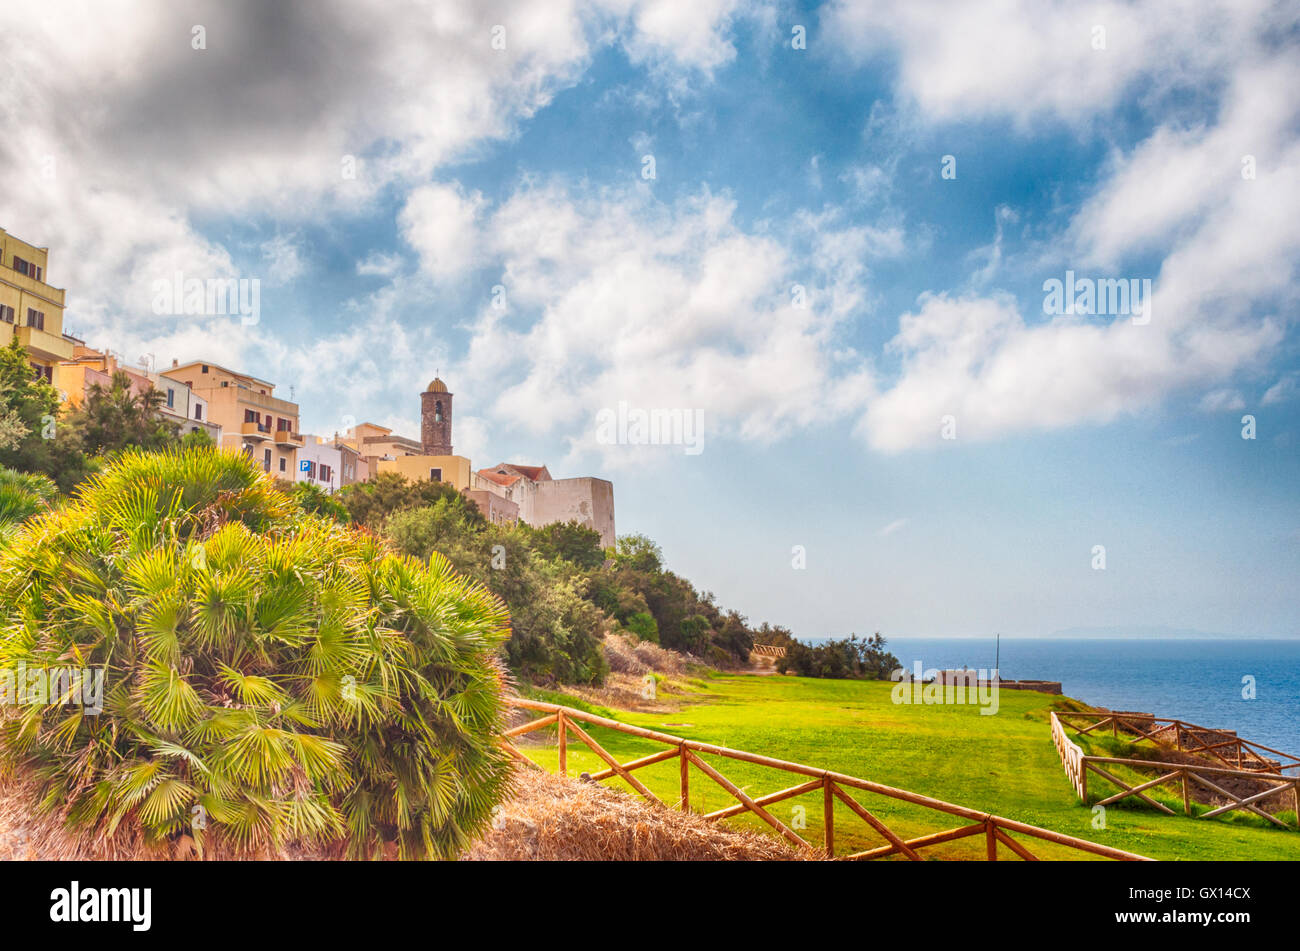 View from castelsardo old city - Sardinia - Italy - Stock Image